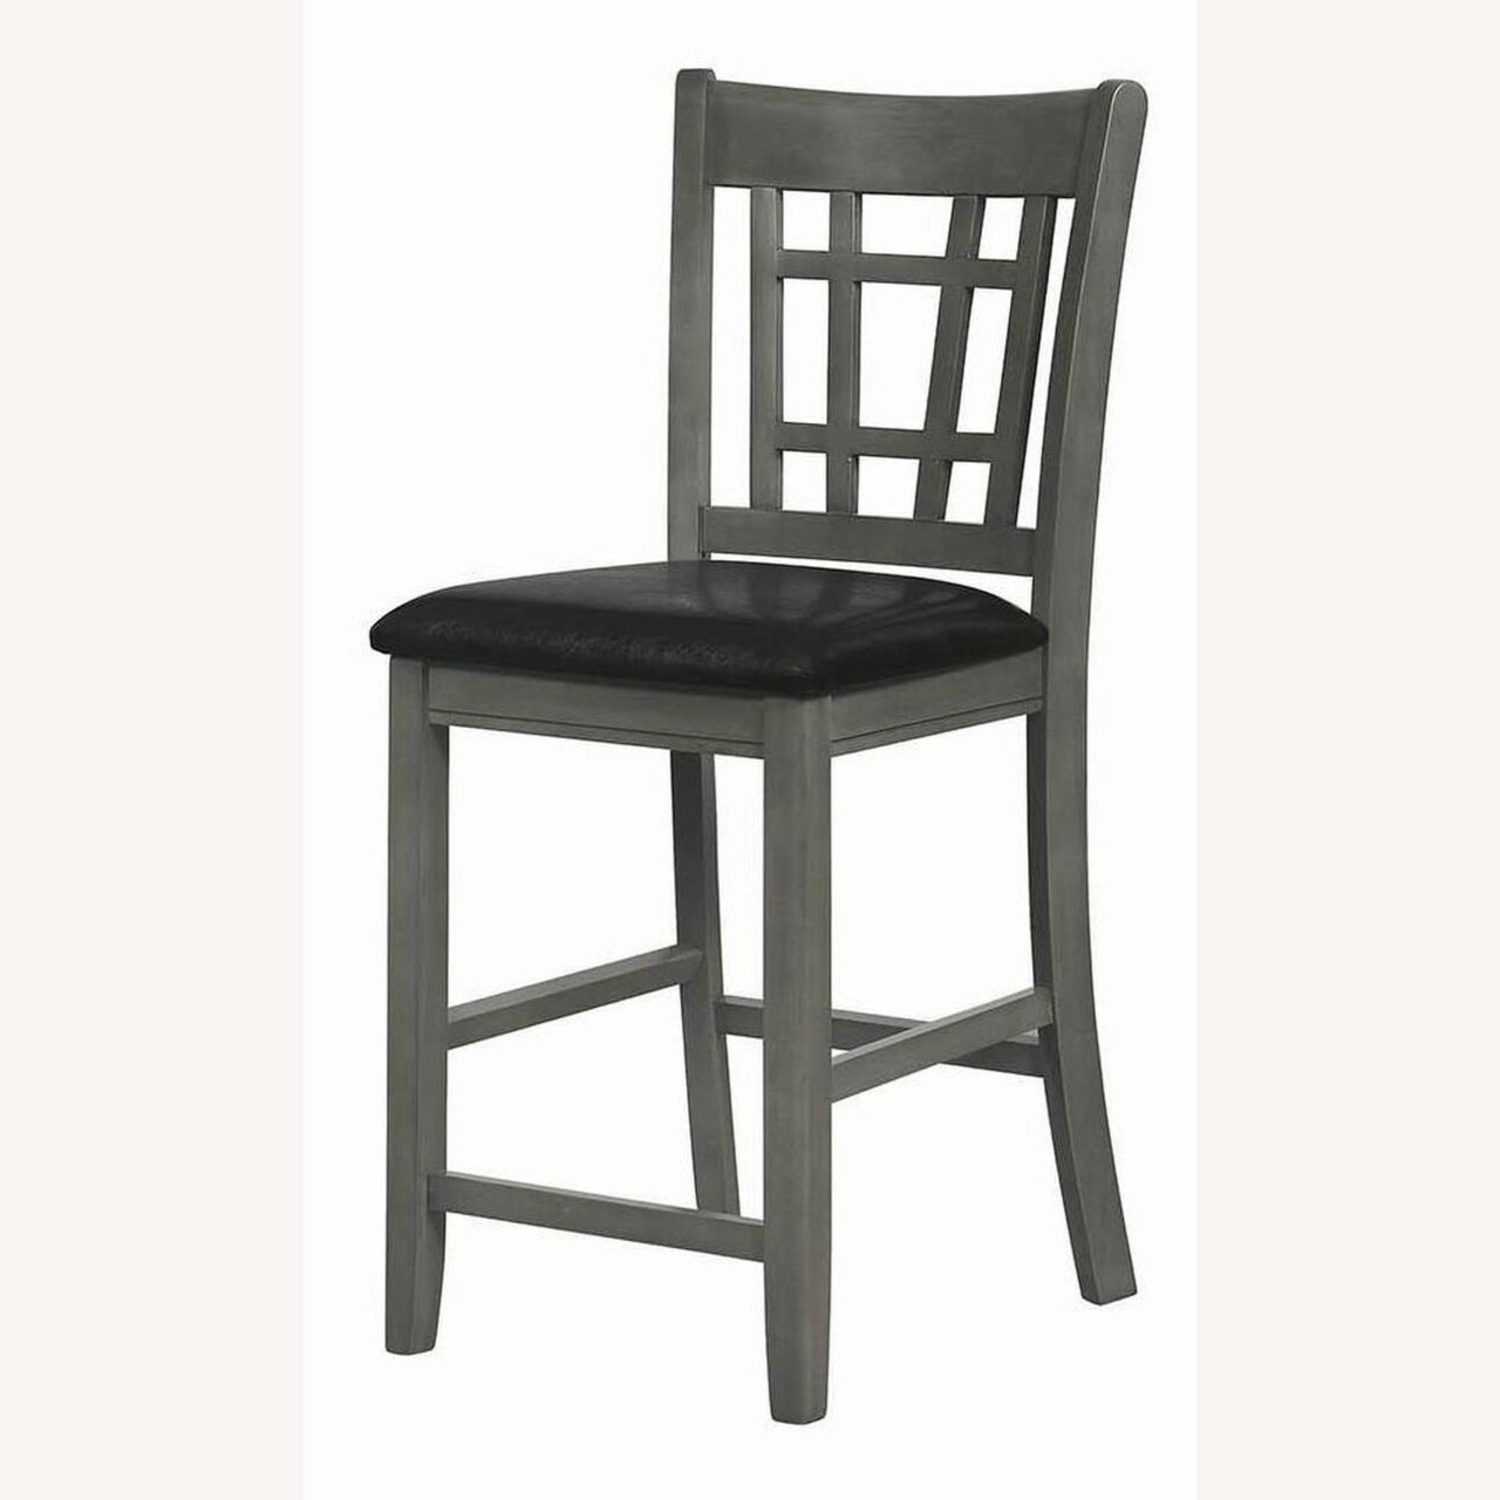 Counter Height Chair In Medium Gray Finish - image-0